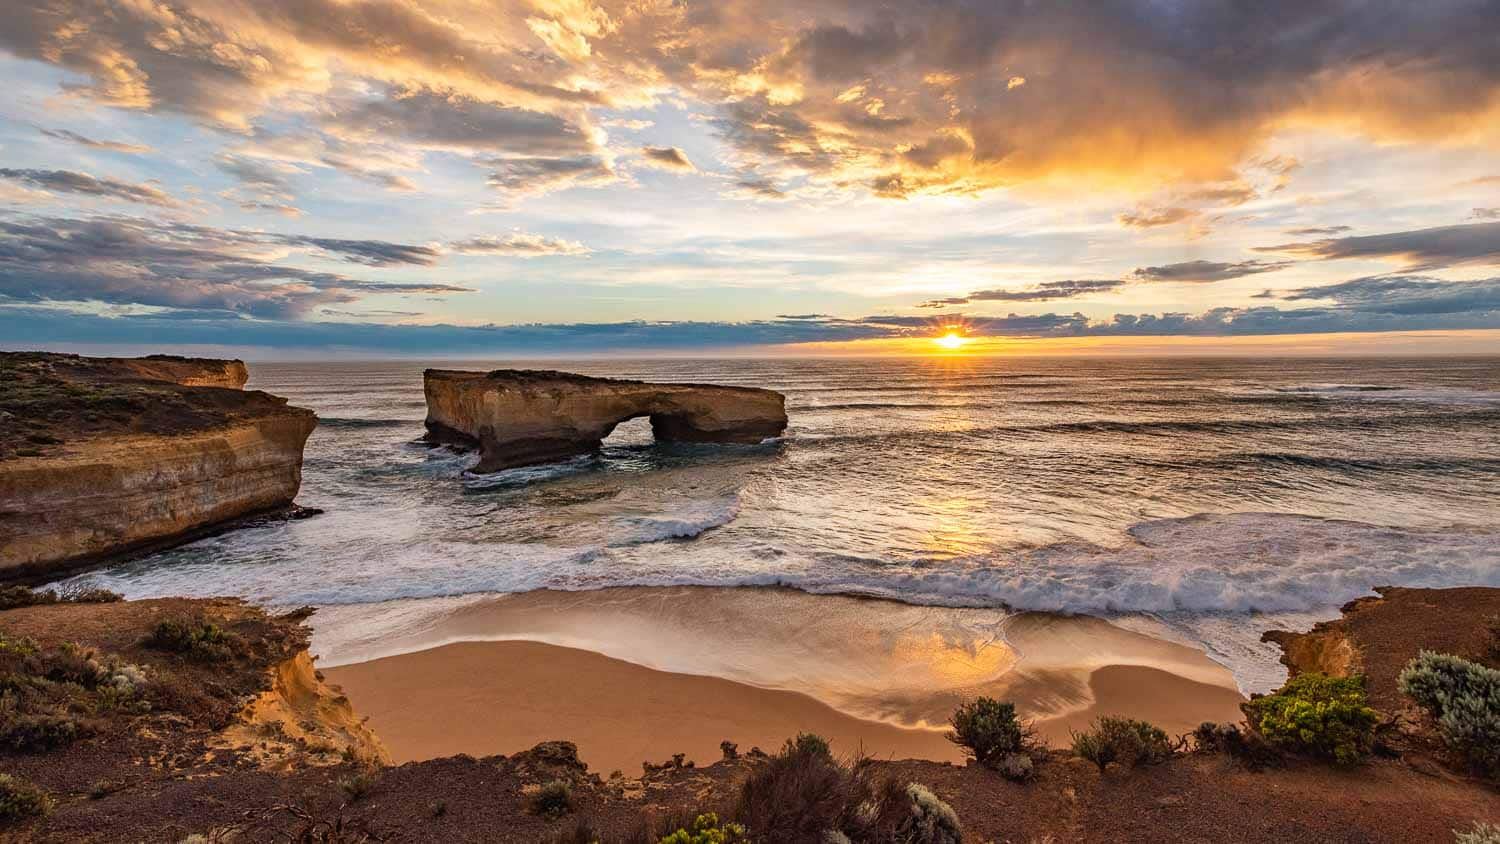 Welcome Image, telling the story of a tranquil sunset at the Great Ocean Road in Australia